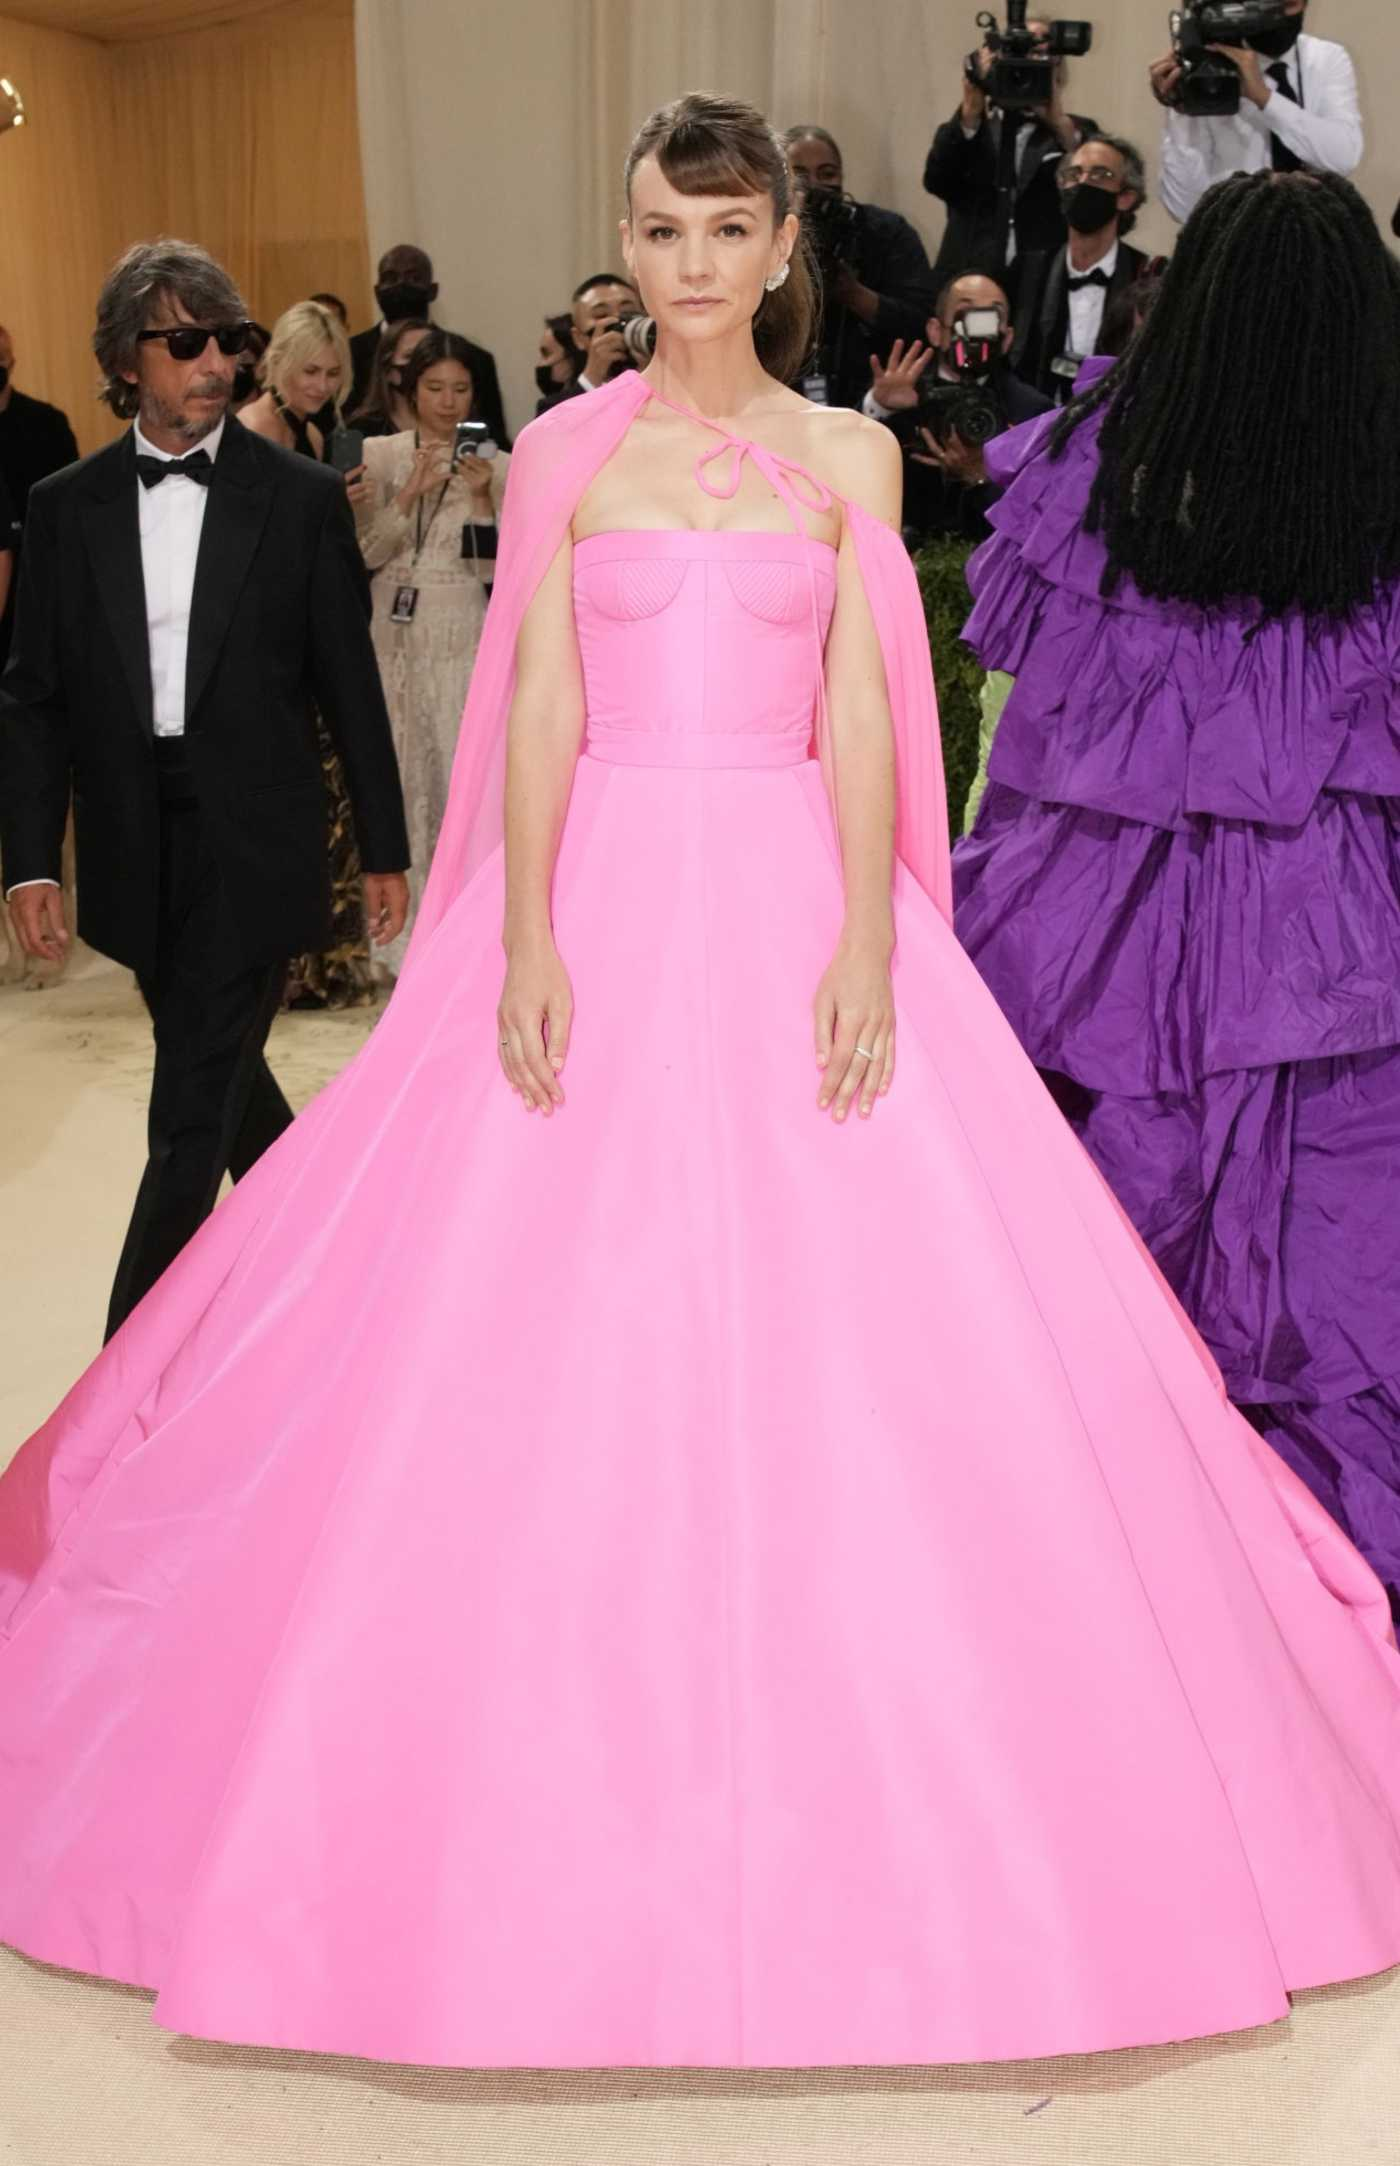 Carey Mulligan Attends 2021 Met Gala In America: A Lexicon of Fashion at Metropolitan Museum of Art in New York City 09/13/2021